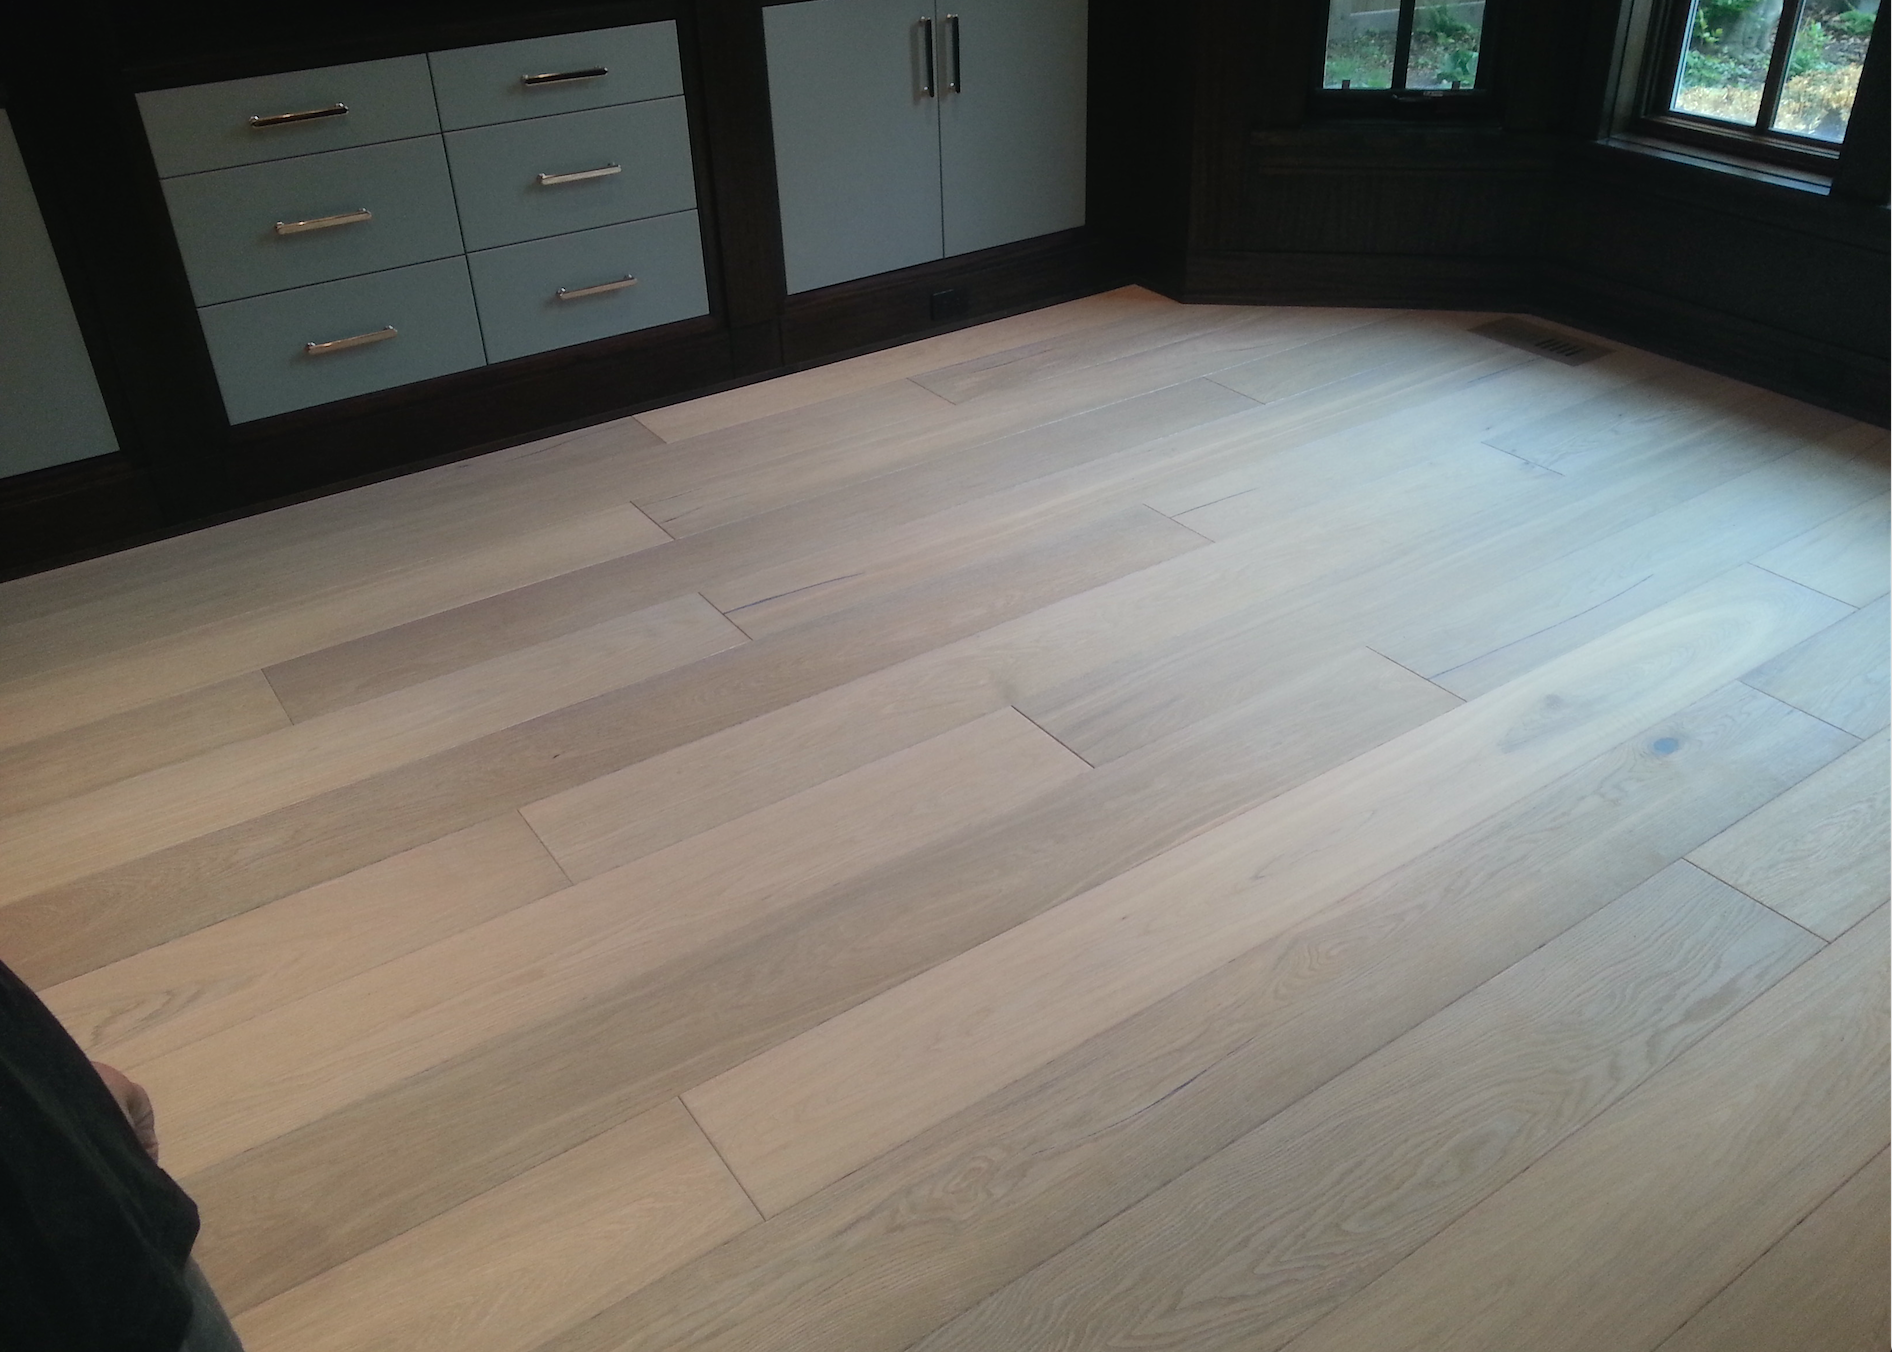 7 Inch White Oak Hardwood Floor La Floor